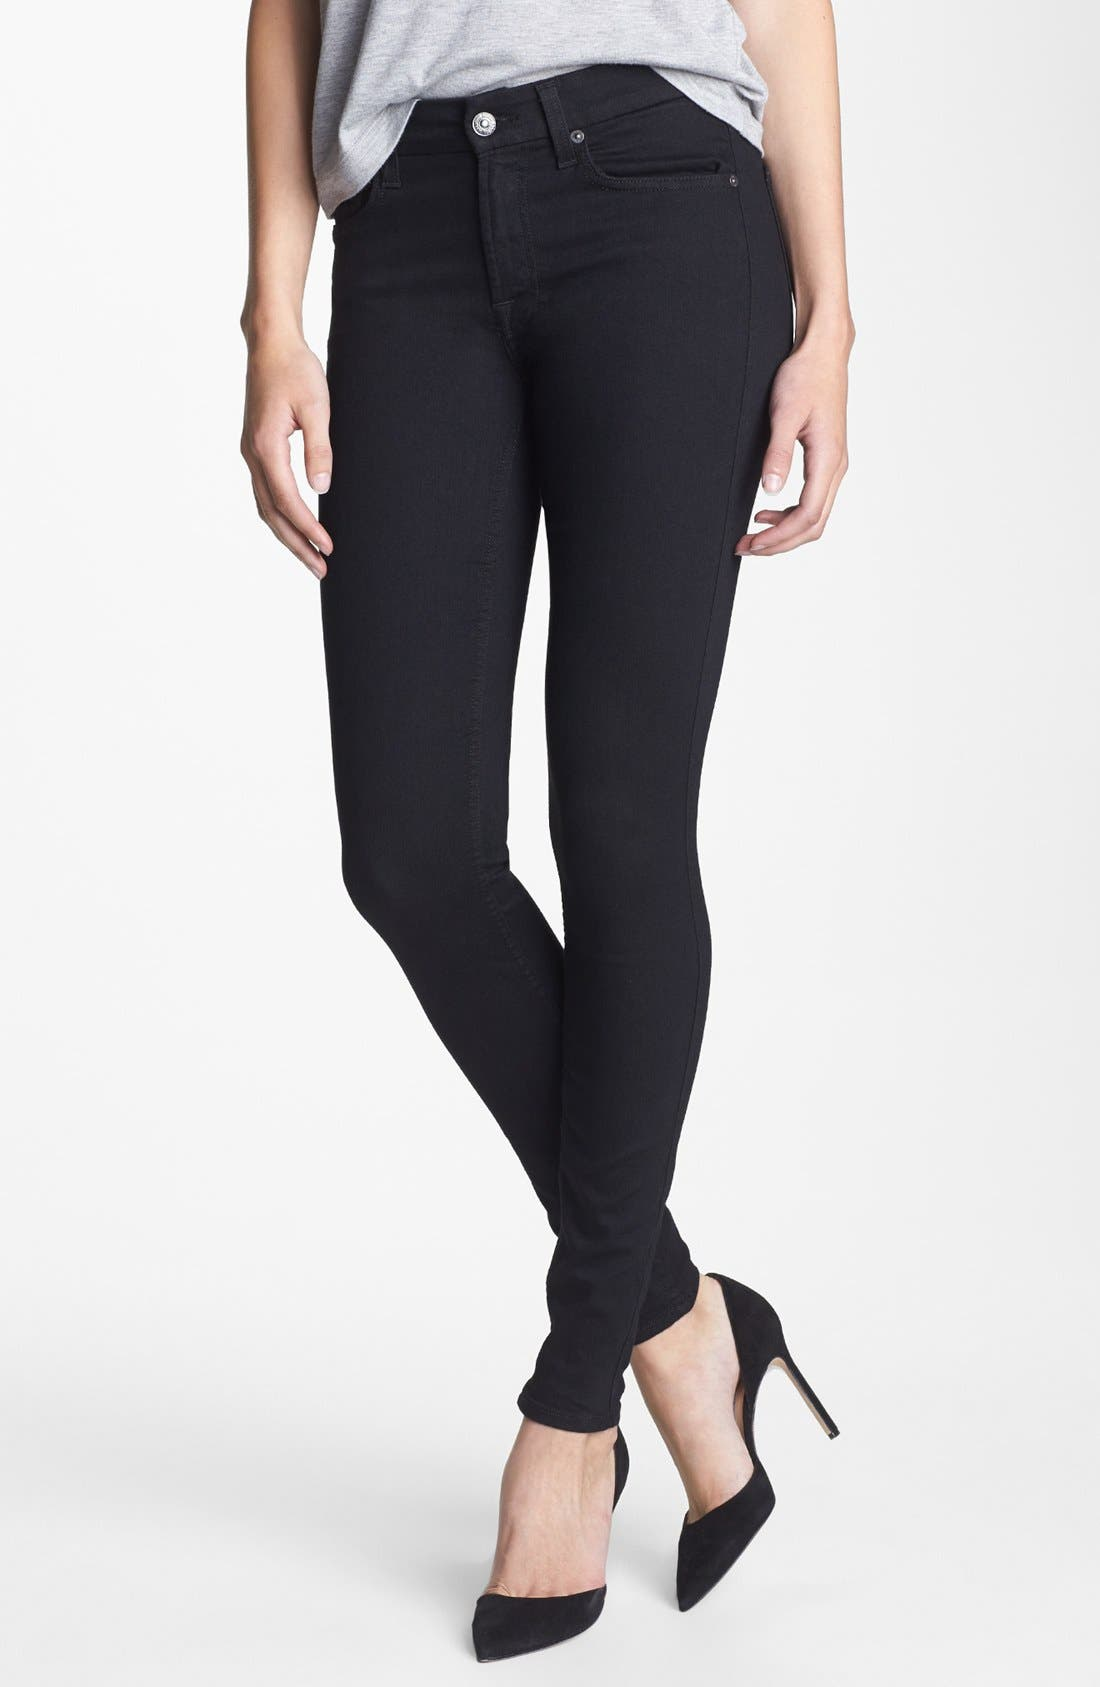 Main Image - 7 For All Mankind® Stretch Skinny Jeans (Elasticity Black)